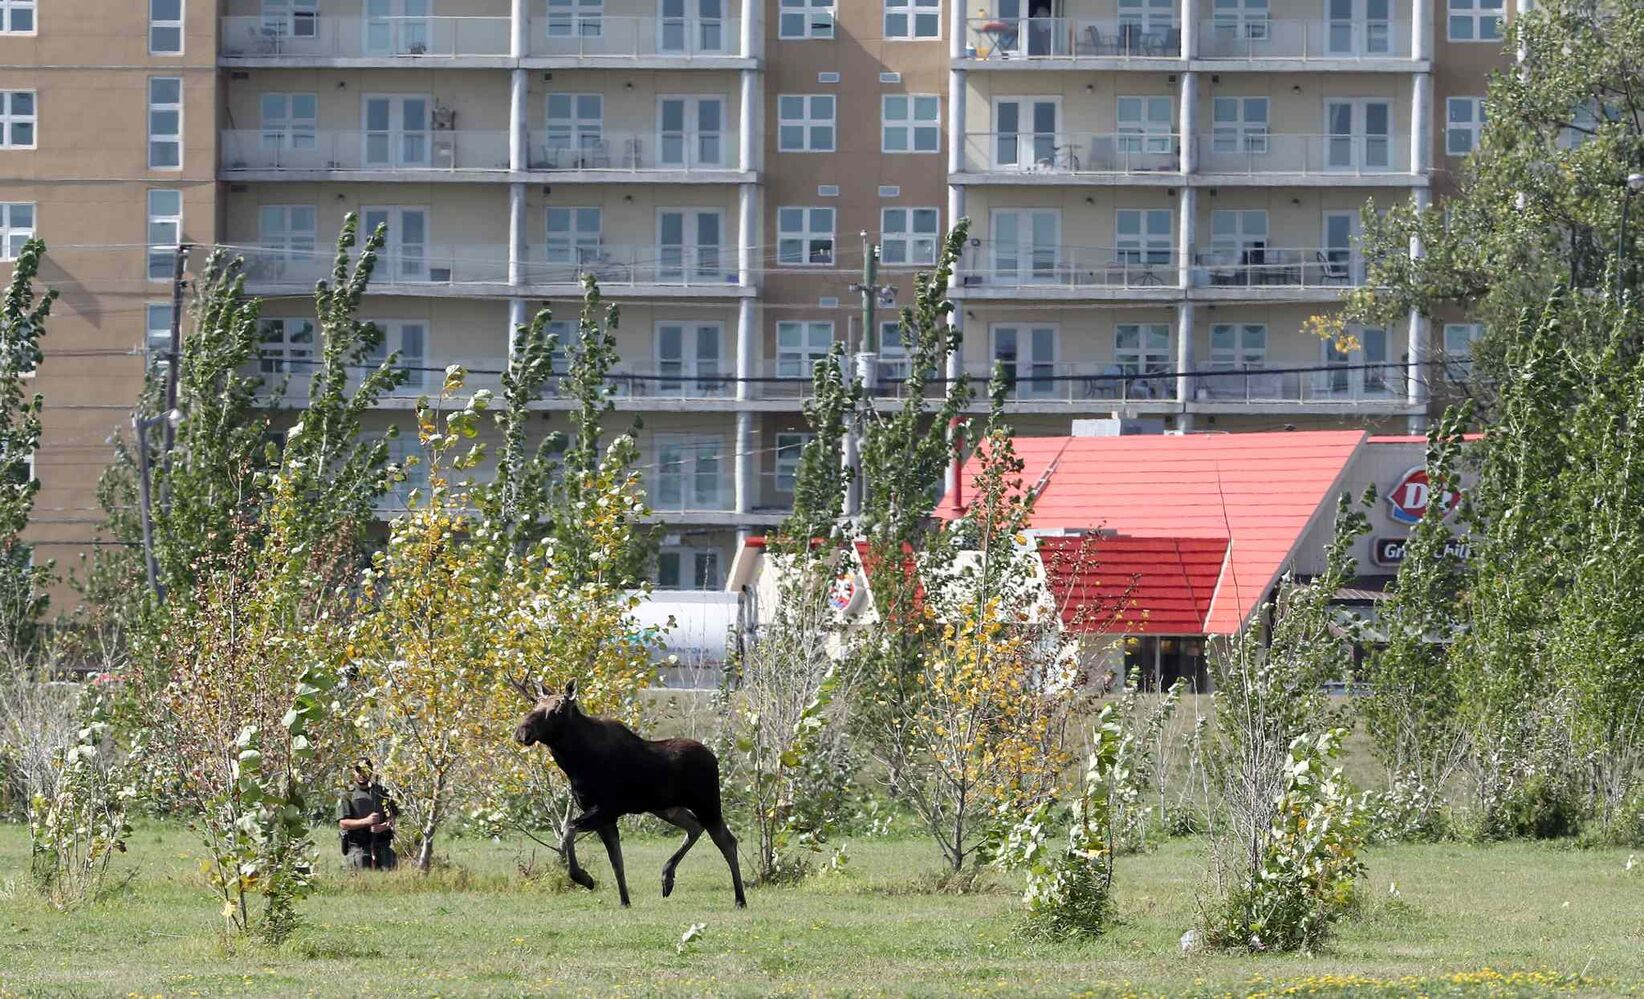 TREVOR HAGAN / WINNIPEG FREE PRESS</p><p>A moose was loose near the corner of Pembina Highway and Chancellor Matheson, Saturday. The moose caused many Winnipeg Blue Bombers fans to be delayed on their way to Investors Group Field for the Banjo Bowl game against the Saskatchewan Roughriders.</p>